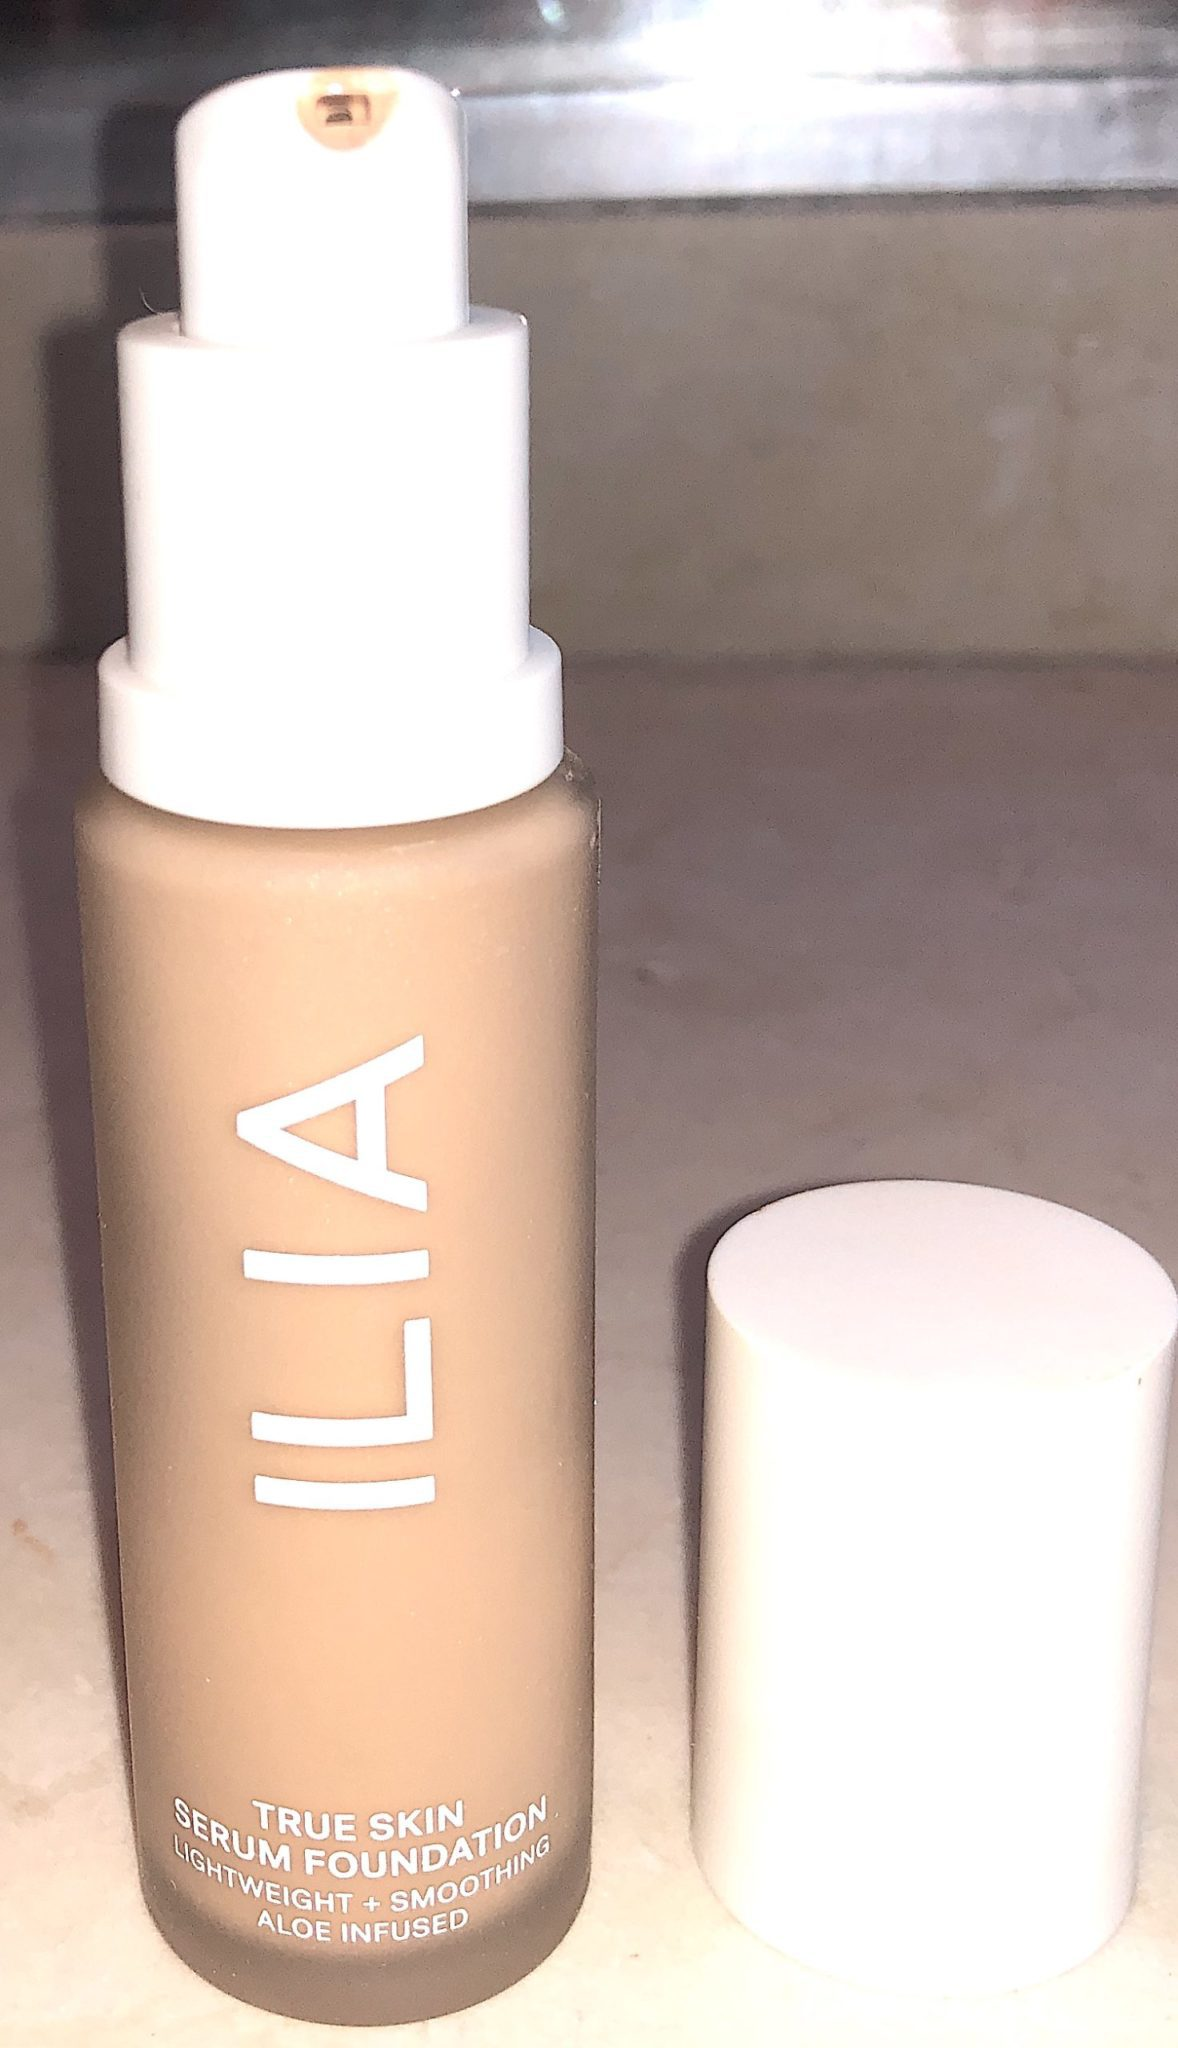 THE PUMP AND GLASS BOTTLE FOR THE ILIA TRUE SKIN SERUM FOUNDATION